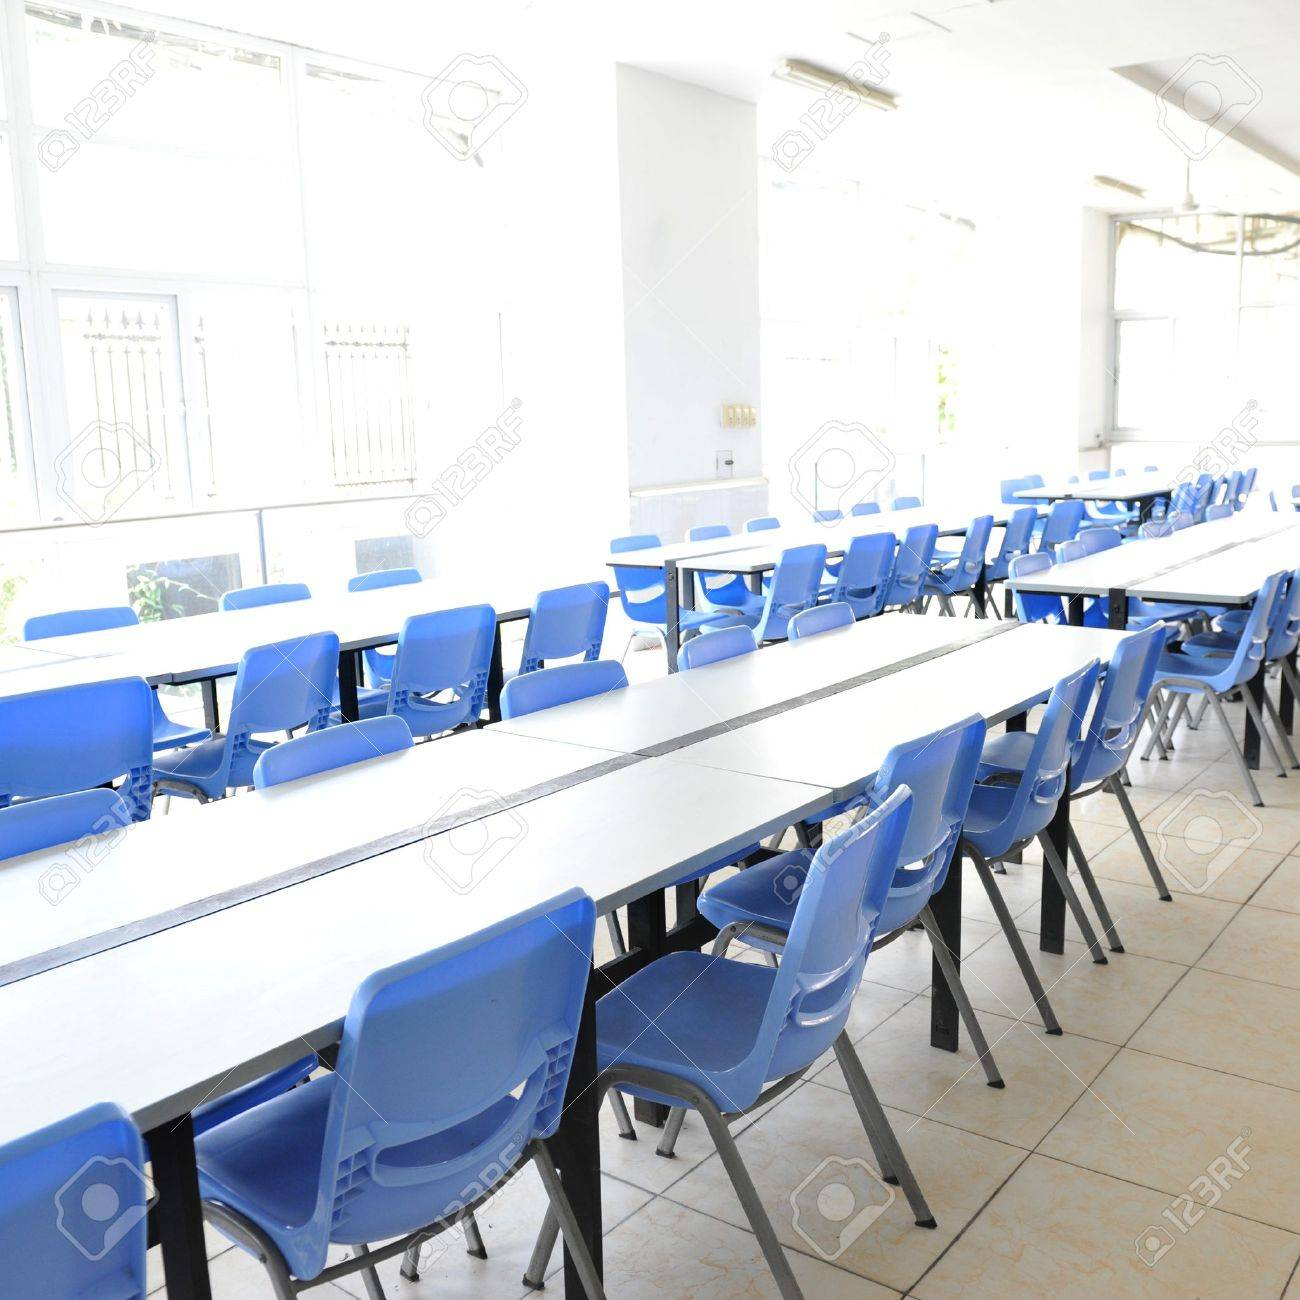 Clean cafeteria tables - Clean School Cafeteria With Many Empty Seats And Tables Stock Photo 14588826